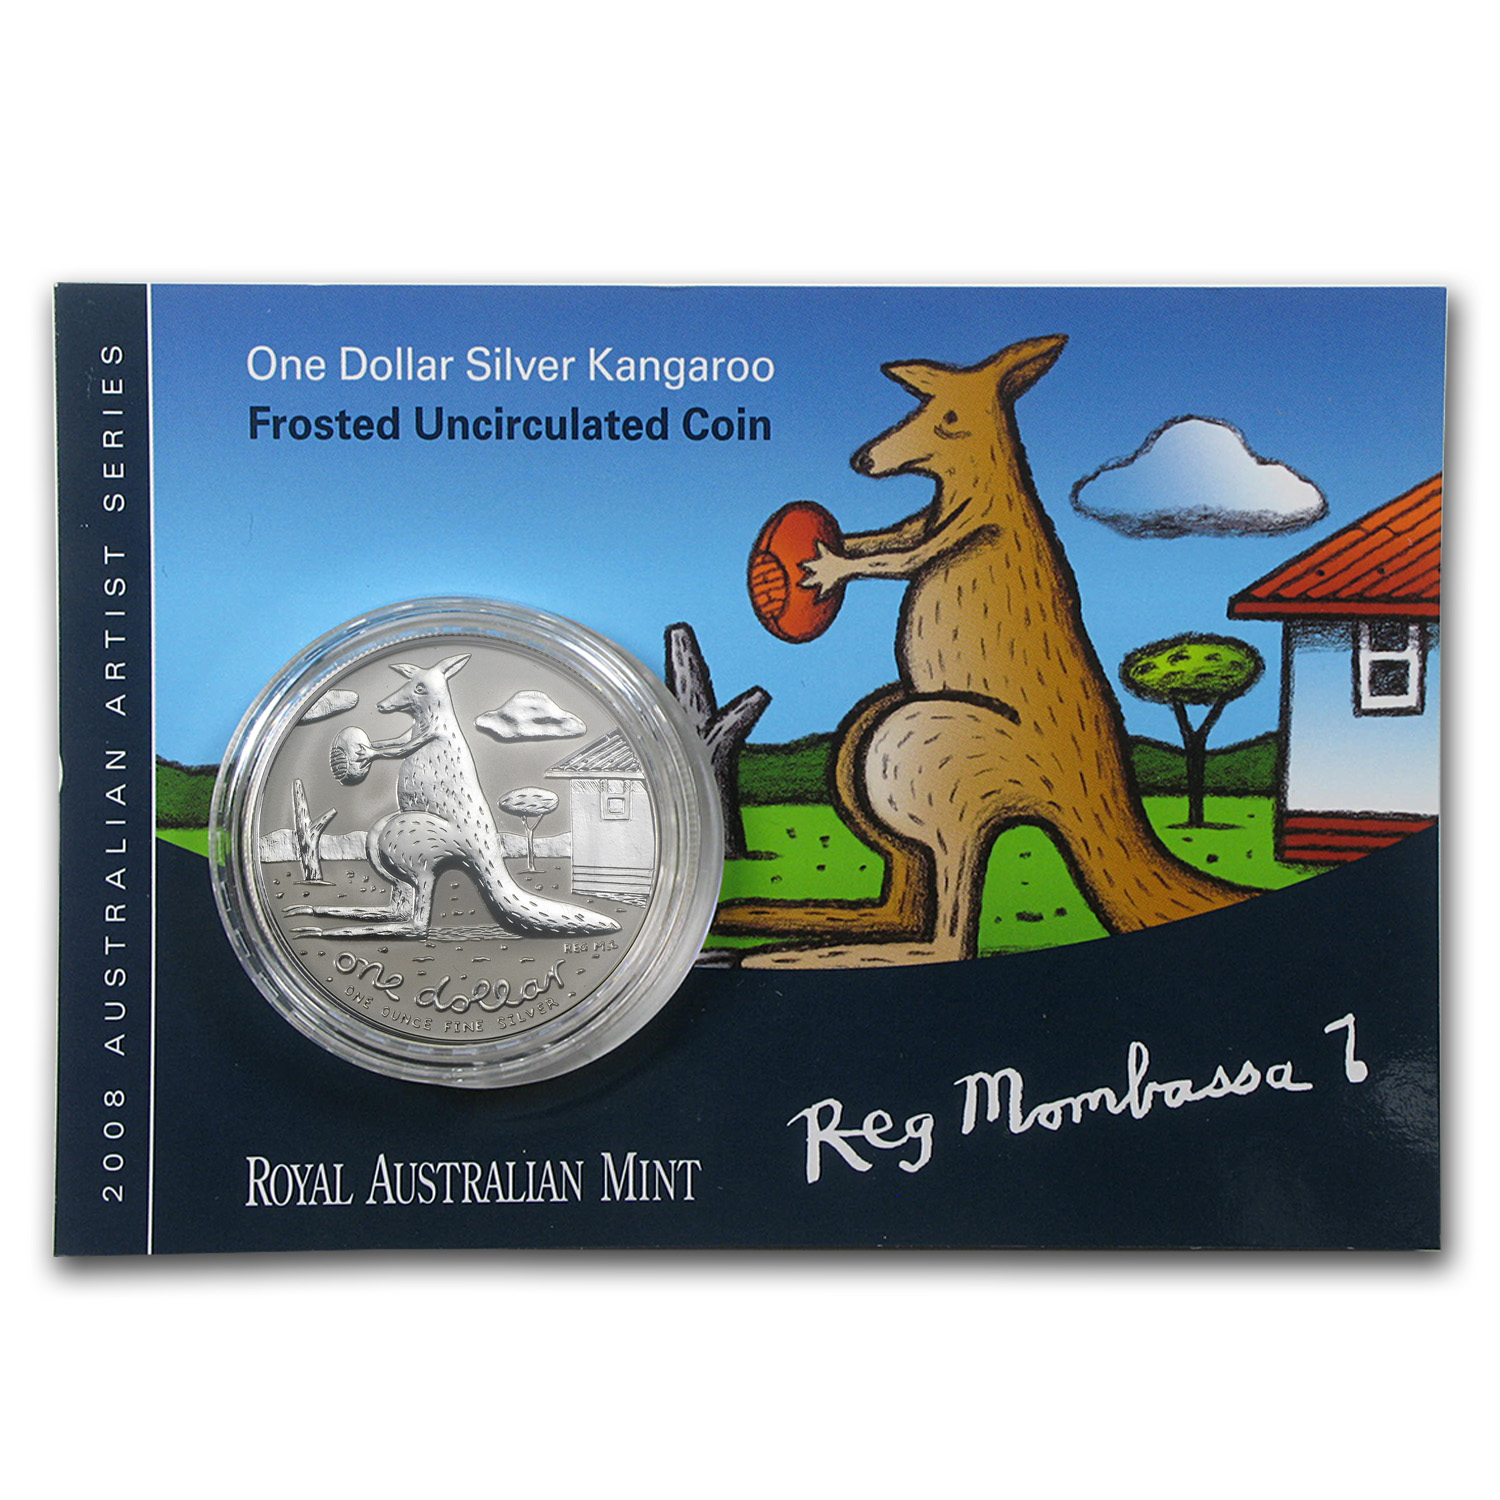 2008 Australia 1 oz Silver Kangaroo (In Display Card)